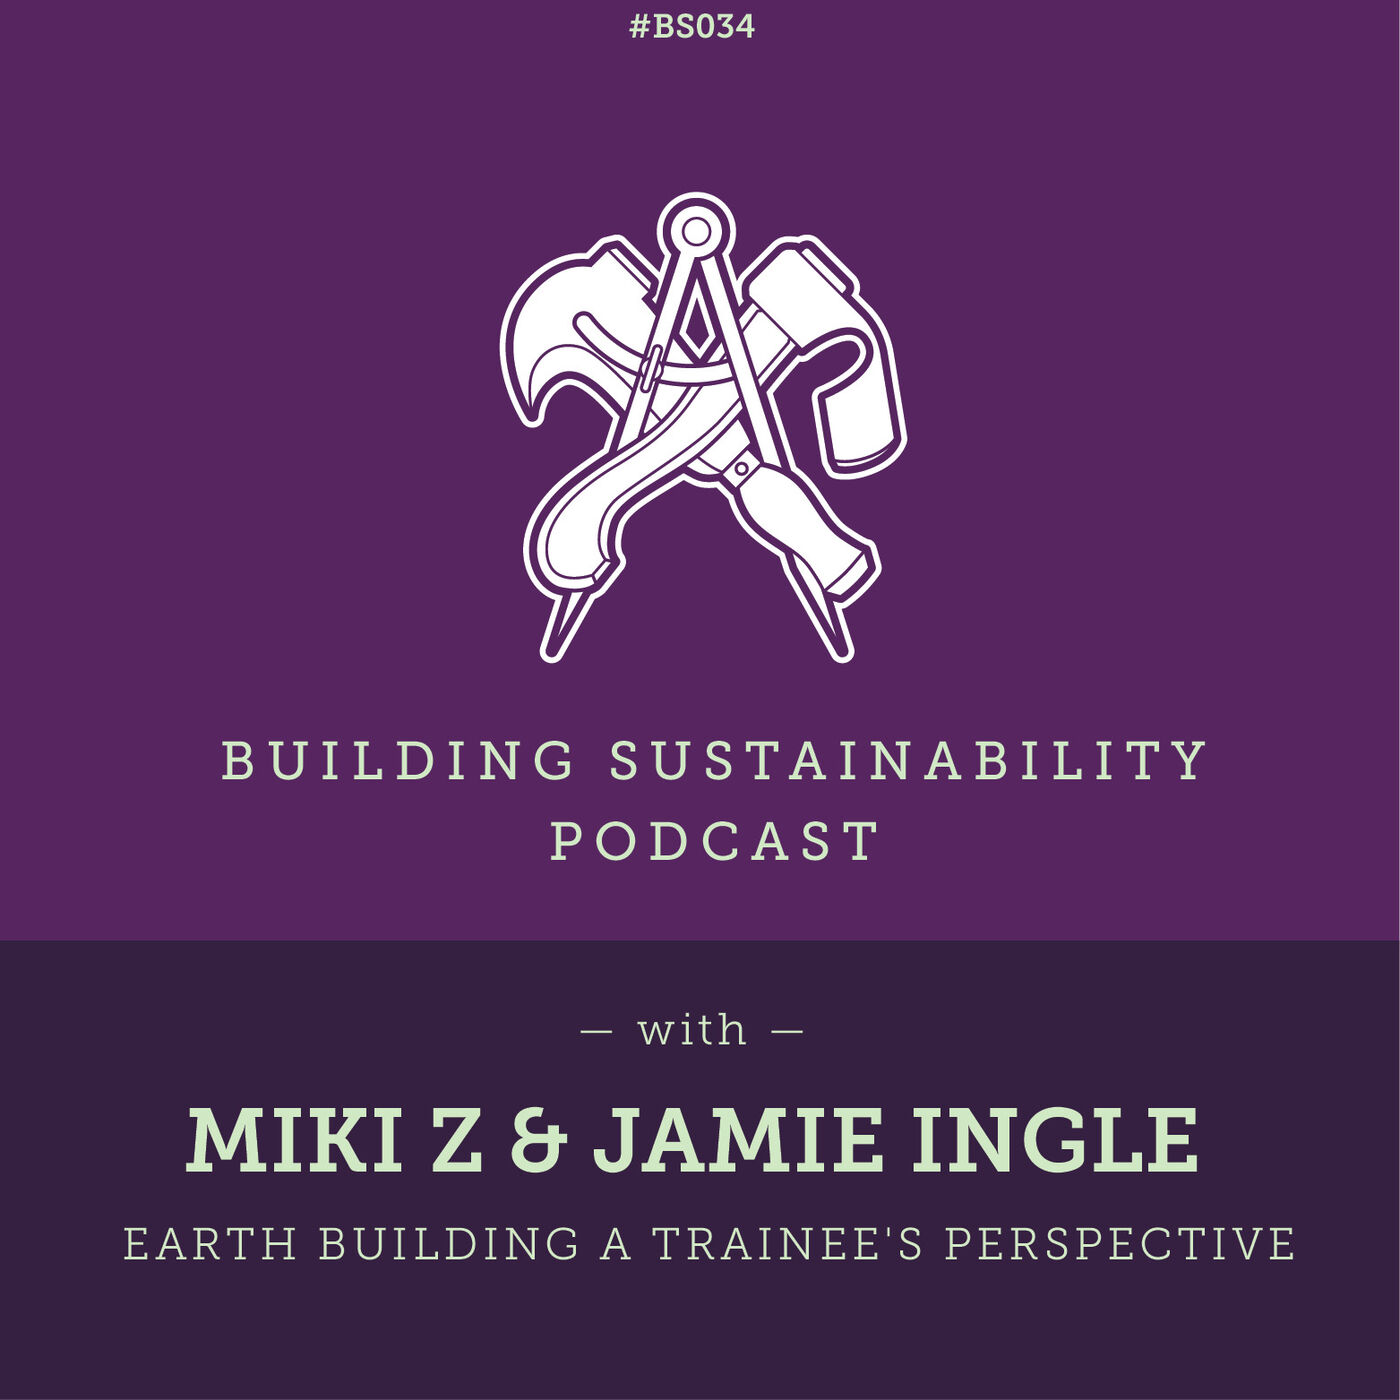 Earth Building a trainee's perspective - Miki Z & Jamie Ingle - Pt2